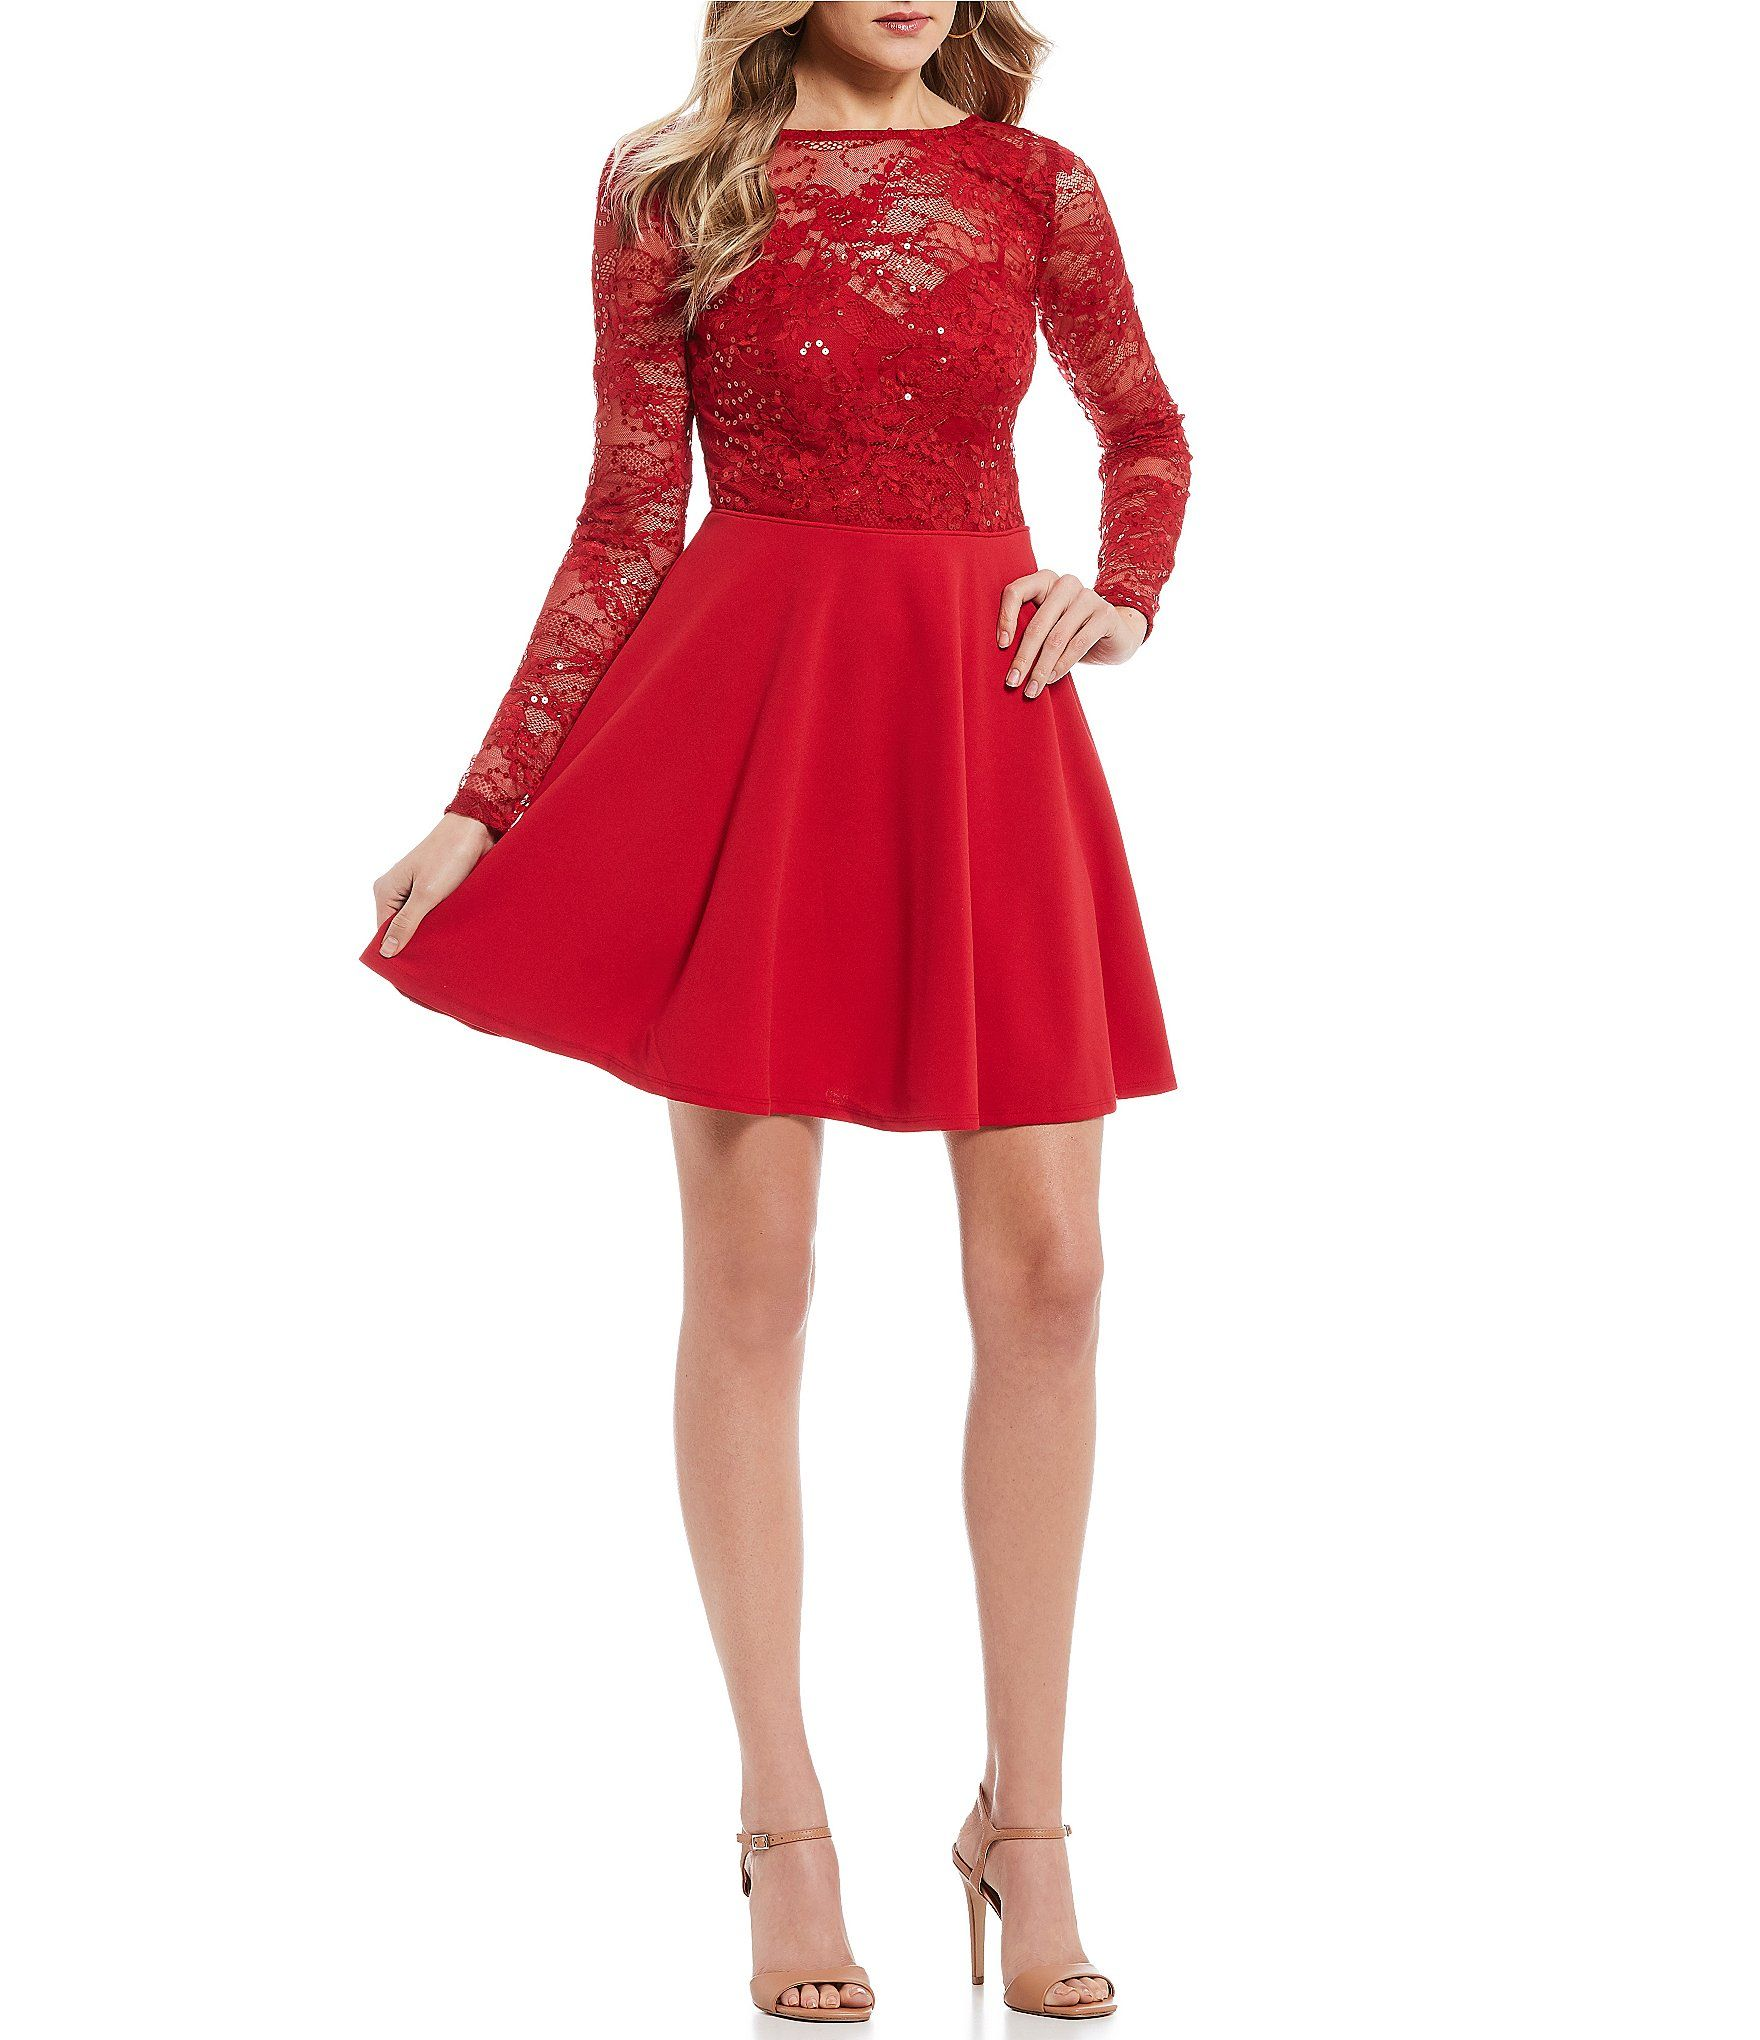 8a73e27ca95 ... dresses vestidos boda rh ar pinterest. bf abc dd fb ca also shop for jodi  kristopher long sleeve bow back fit and